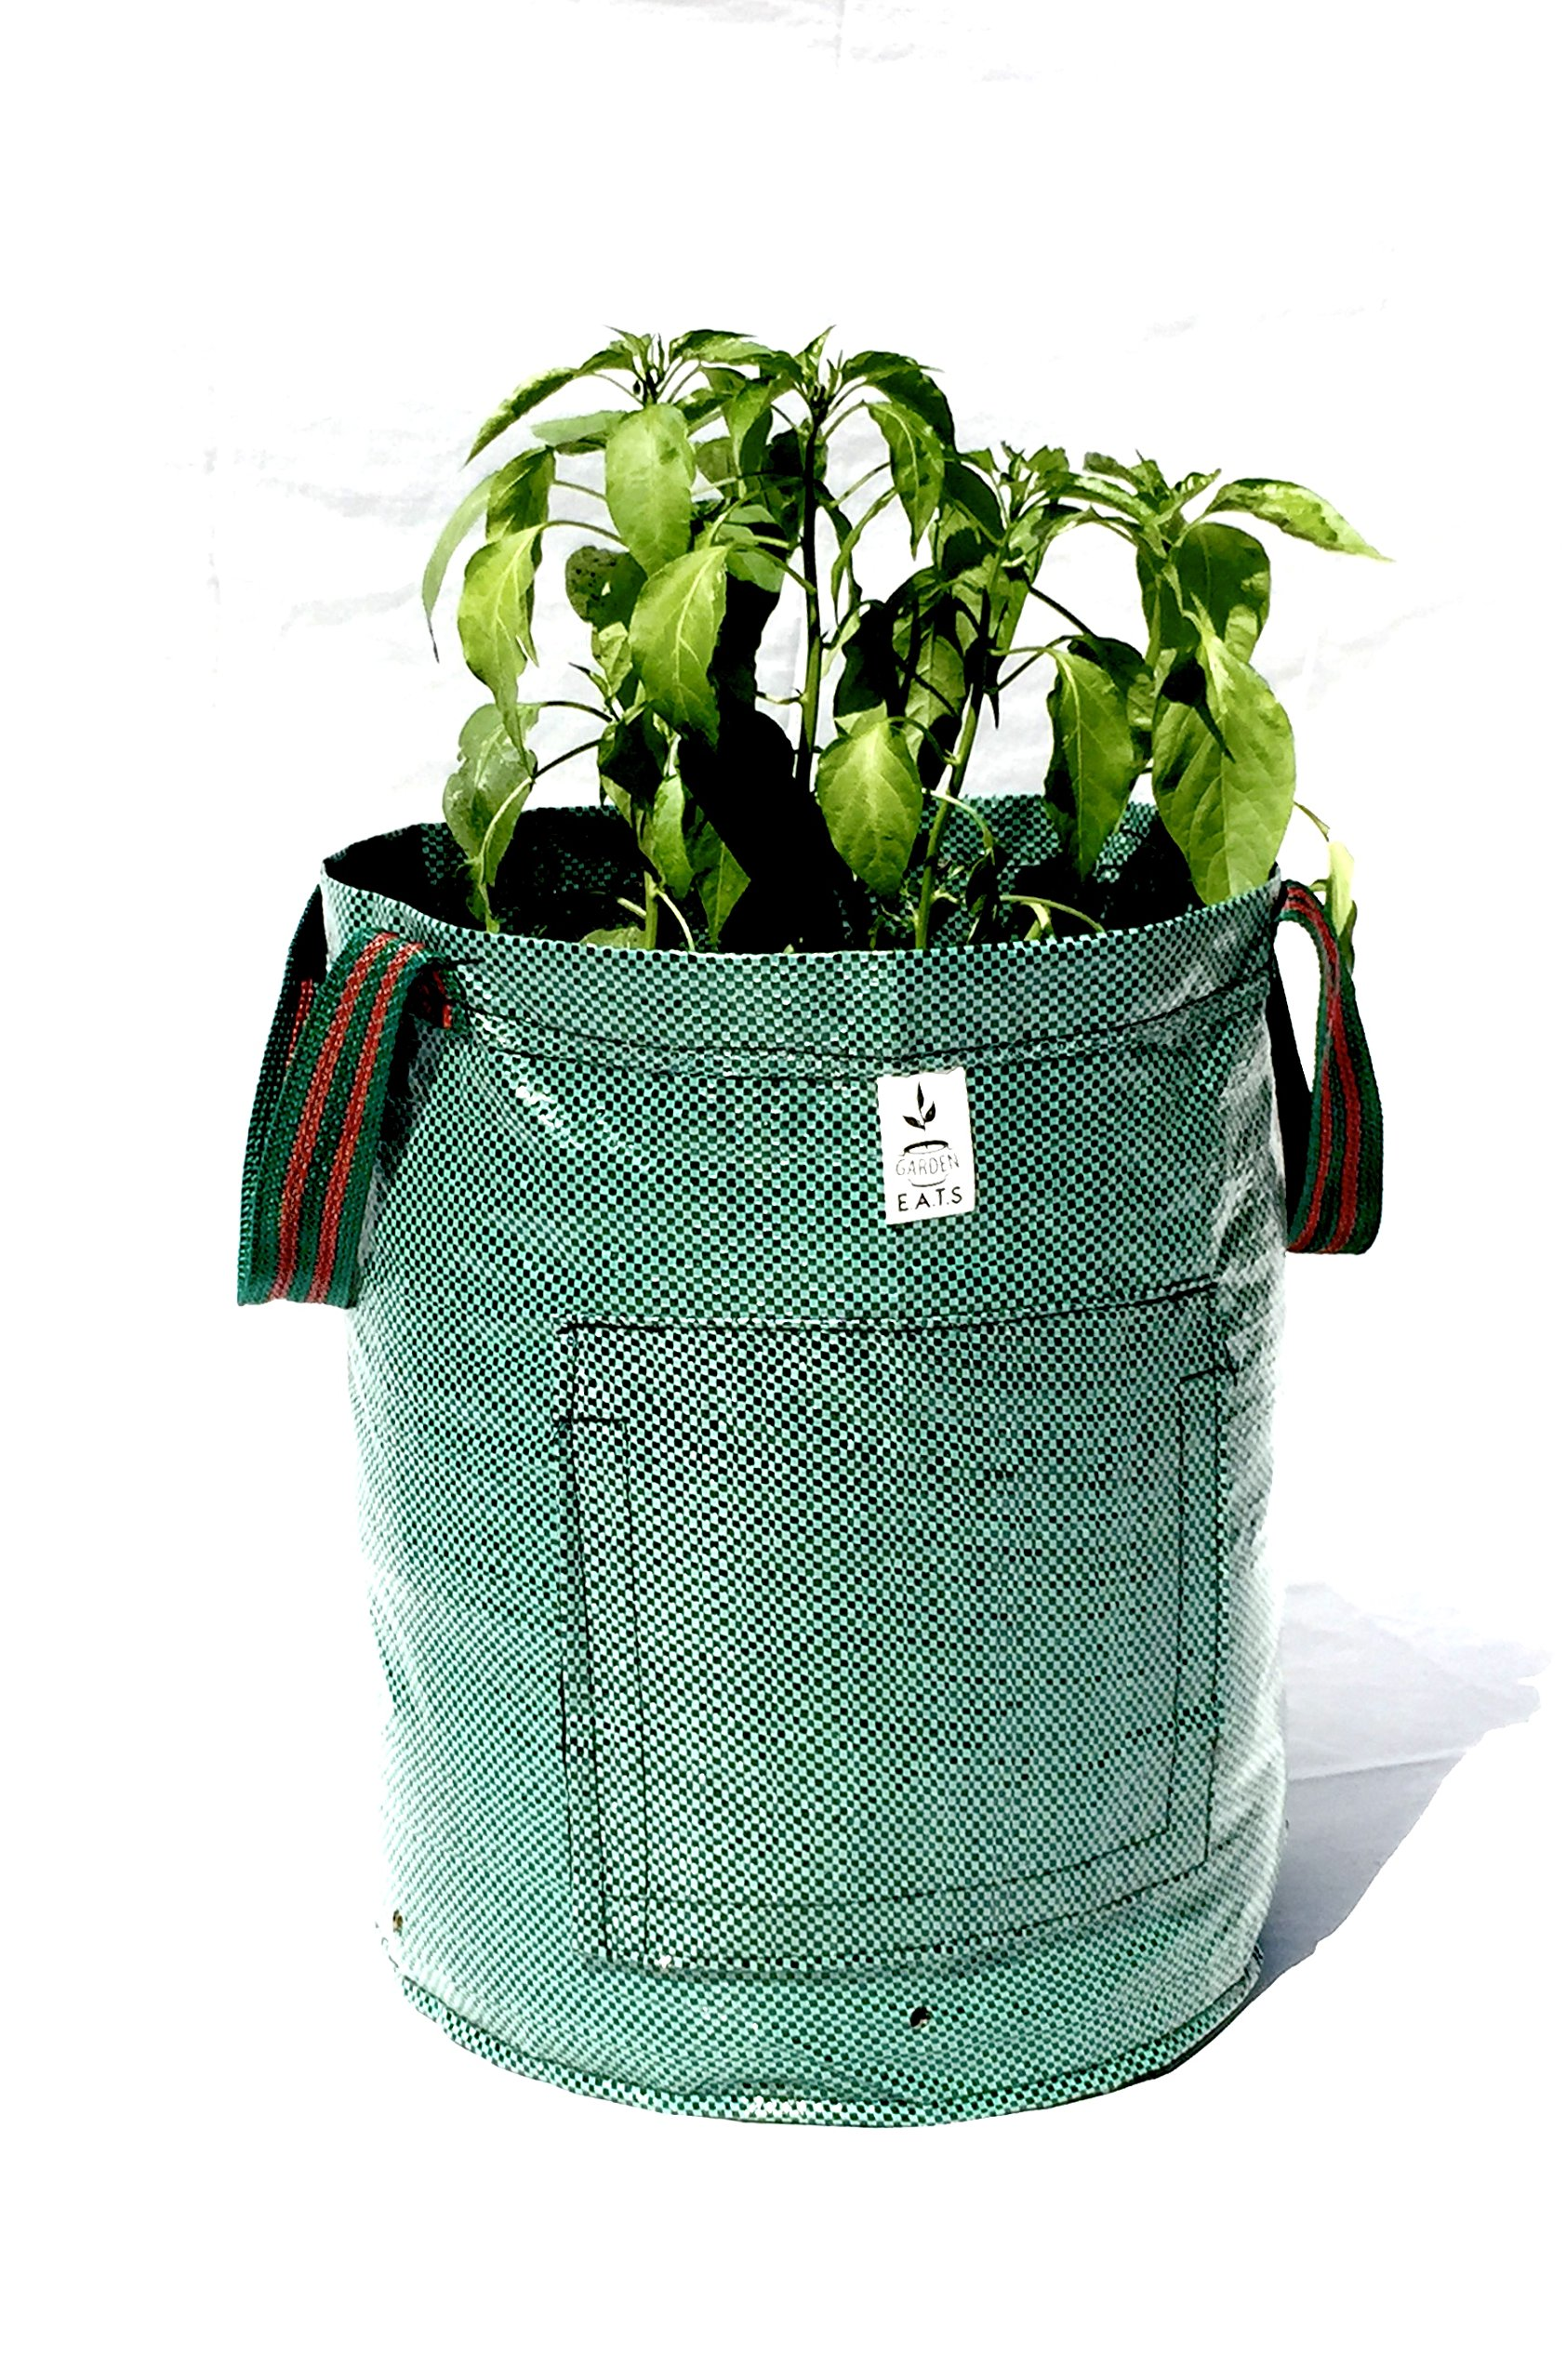 Garden E.A.T.S. 10 Gallon Garden Potato Grow Bag With Handles (2Pack)-Grow Veggies: Onions, Potatoes, Carrots & Anything You Desire, Smart Easy Access Door To Harvest All Root Vegetables